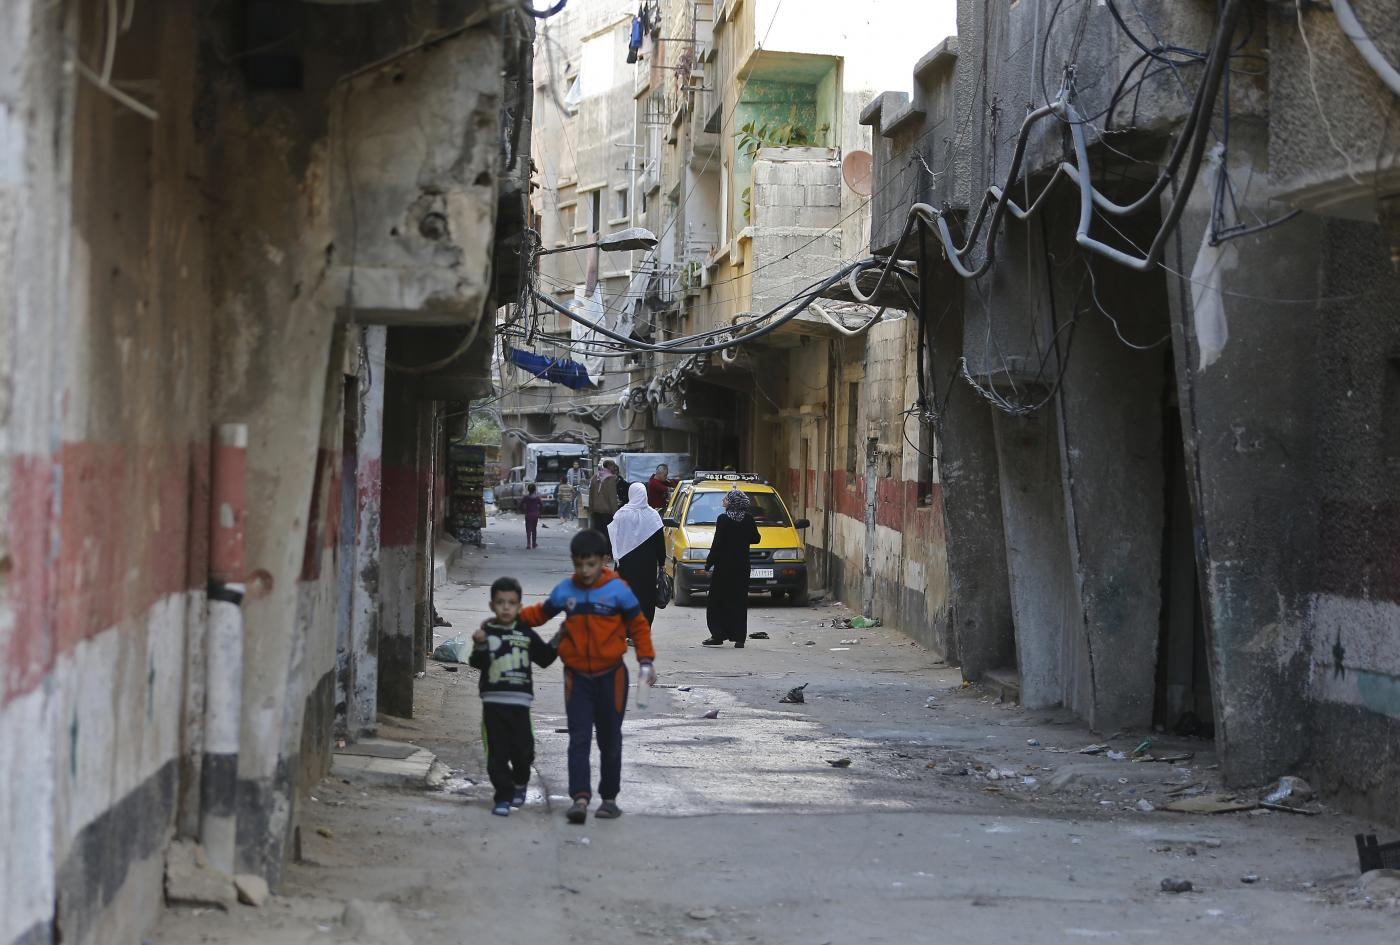 Palestinians' homes stolen once again as Assad eyes Syria's Yarmouk camp